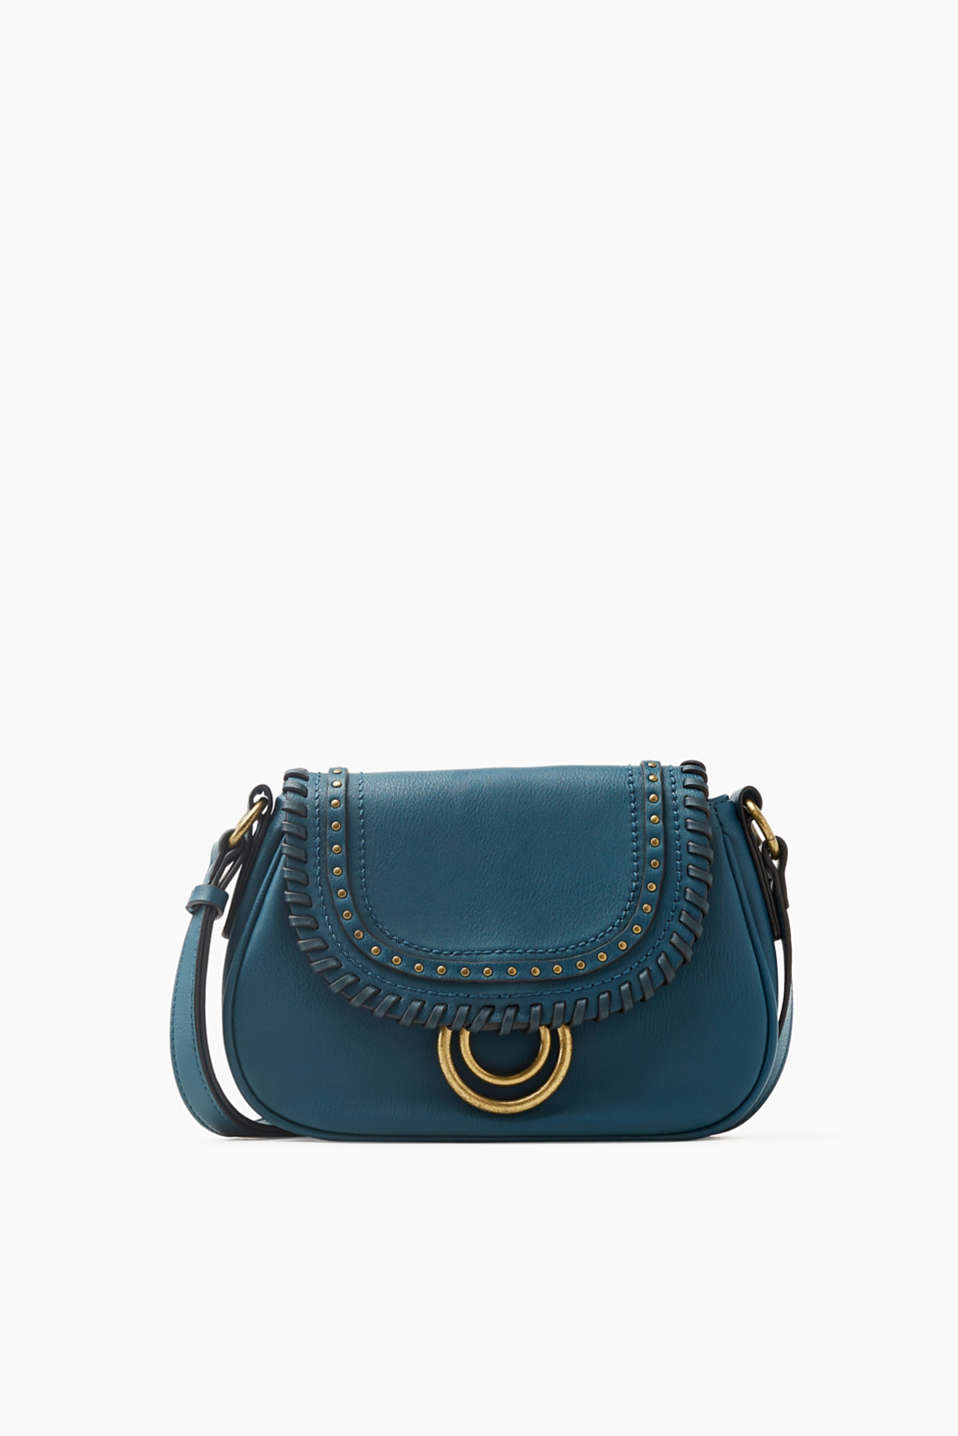 Faux leather shoulder bag with decorative embellishments with on-trend vintage appeal